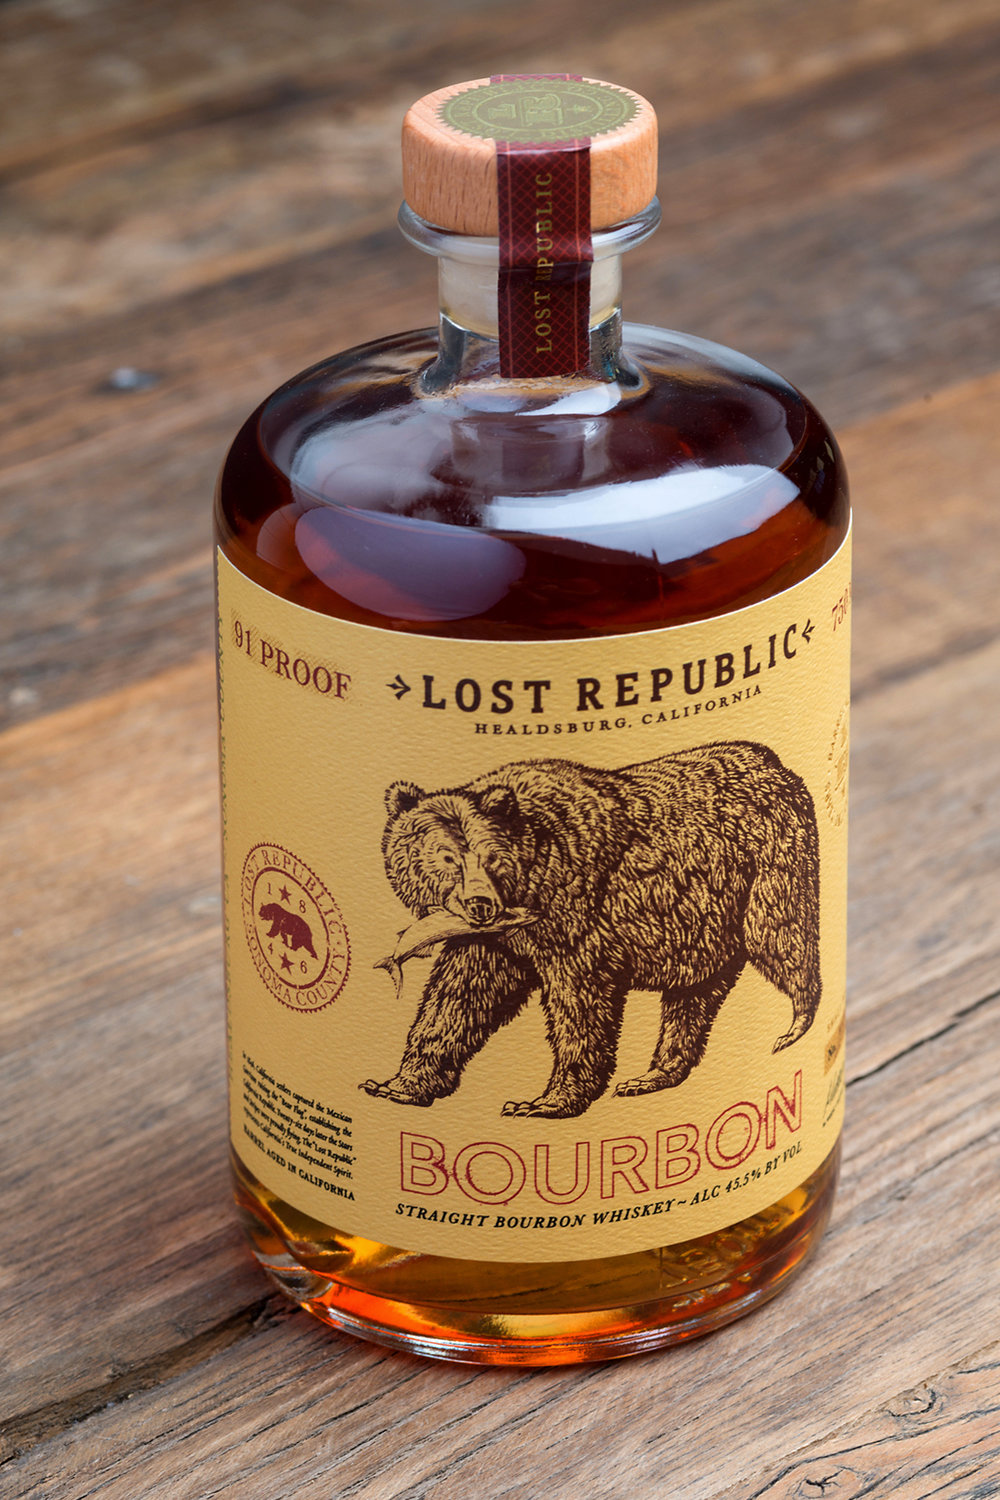 Lost Republic Bourbon Package Design by Tim Gatto for Auston Design Group